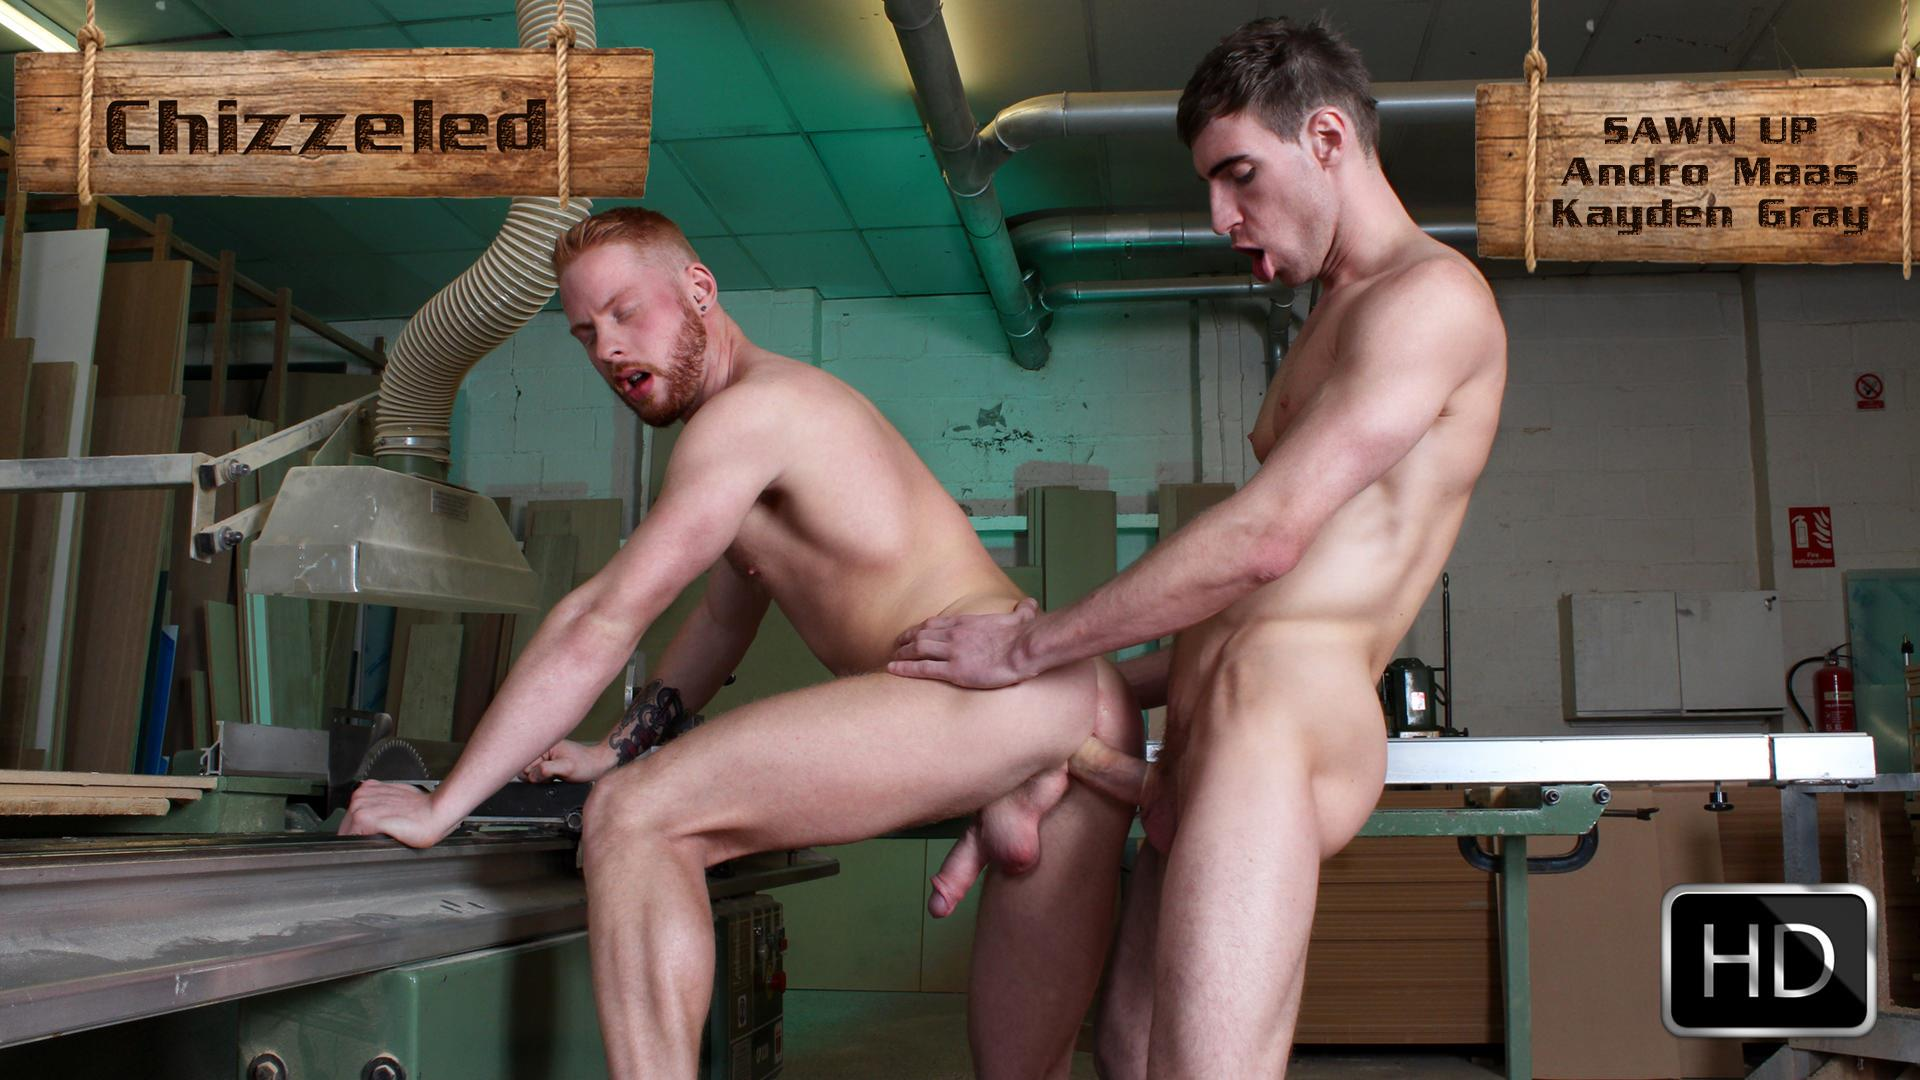 UK-Hot-Jocks-Kayden-Gray-Andro-Maas-Redhead-Getting-Fucked-By-Big-Uncut-Cock-Amateur-Gay-Porn-22 Hung Ginger Takes Kayden Gray's Huge Uncut Cock Up The Ass